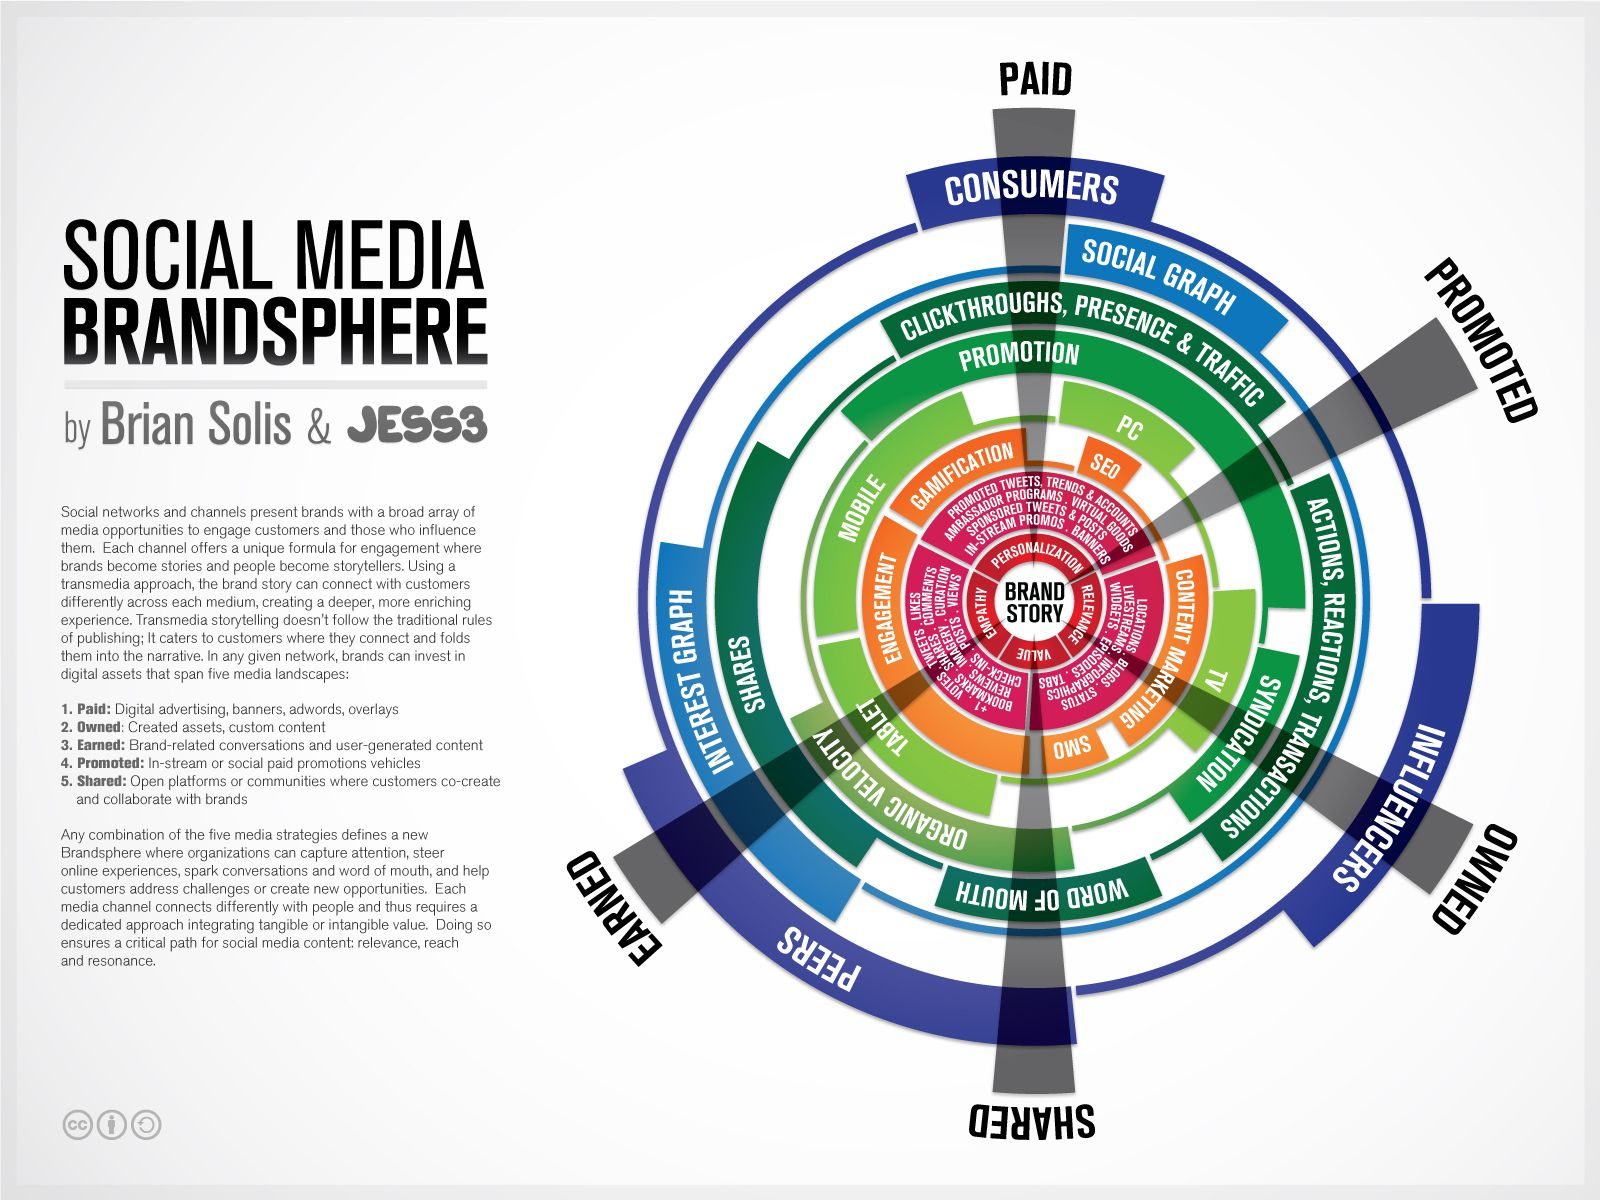 Looking Beyond Paid, Earned, Owned Media: The Brandsphere Infographic - Brian Solis